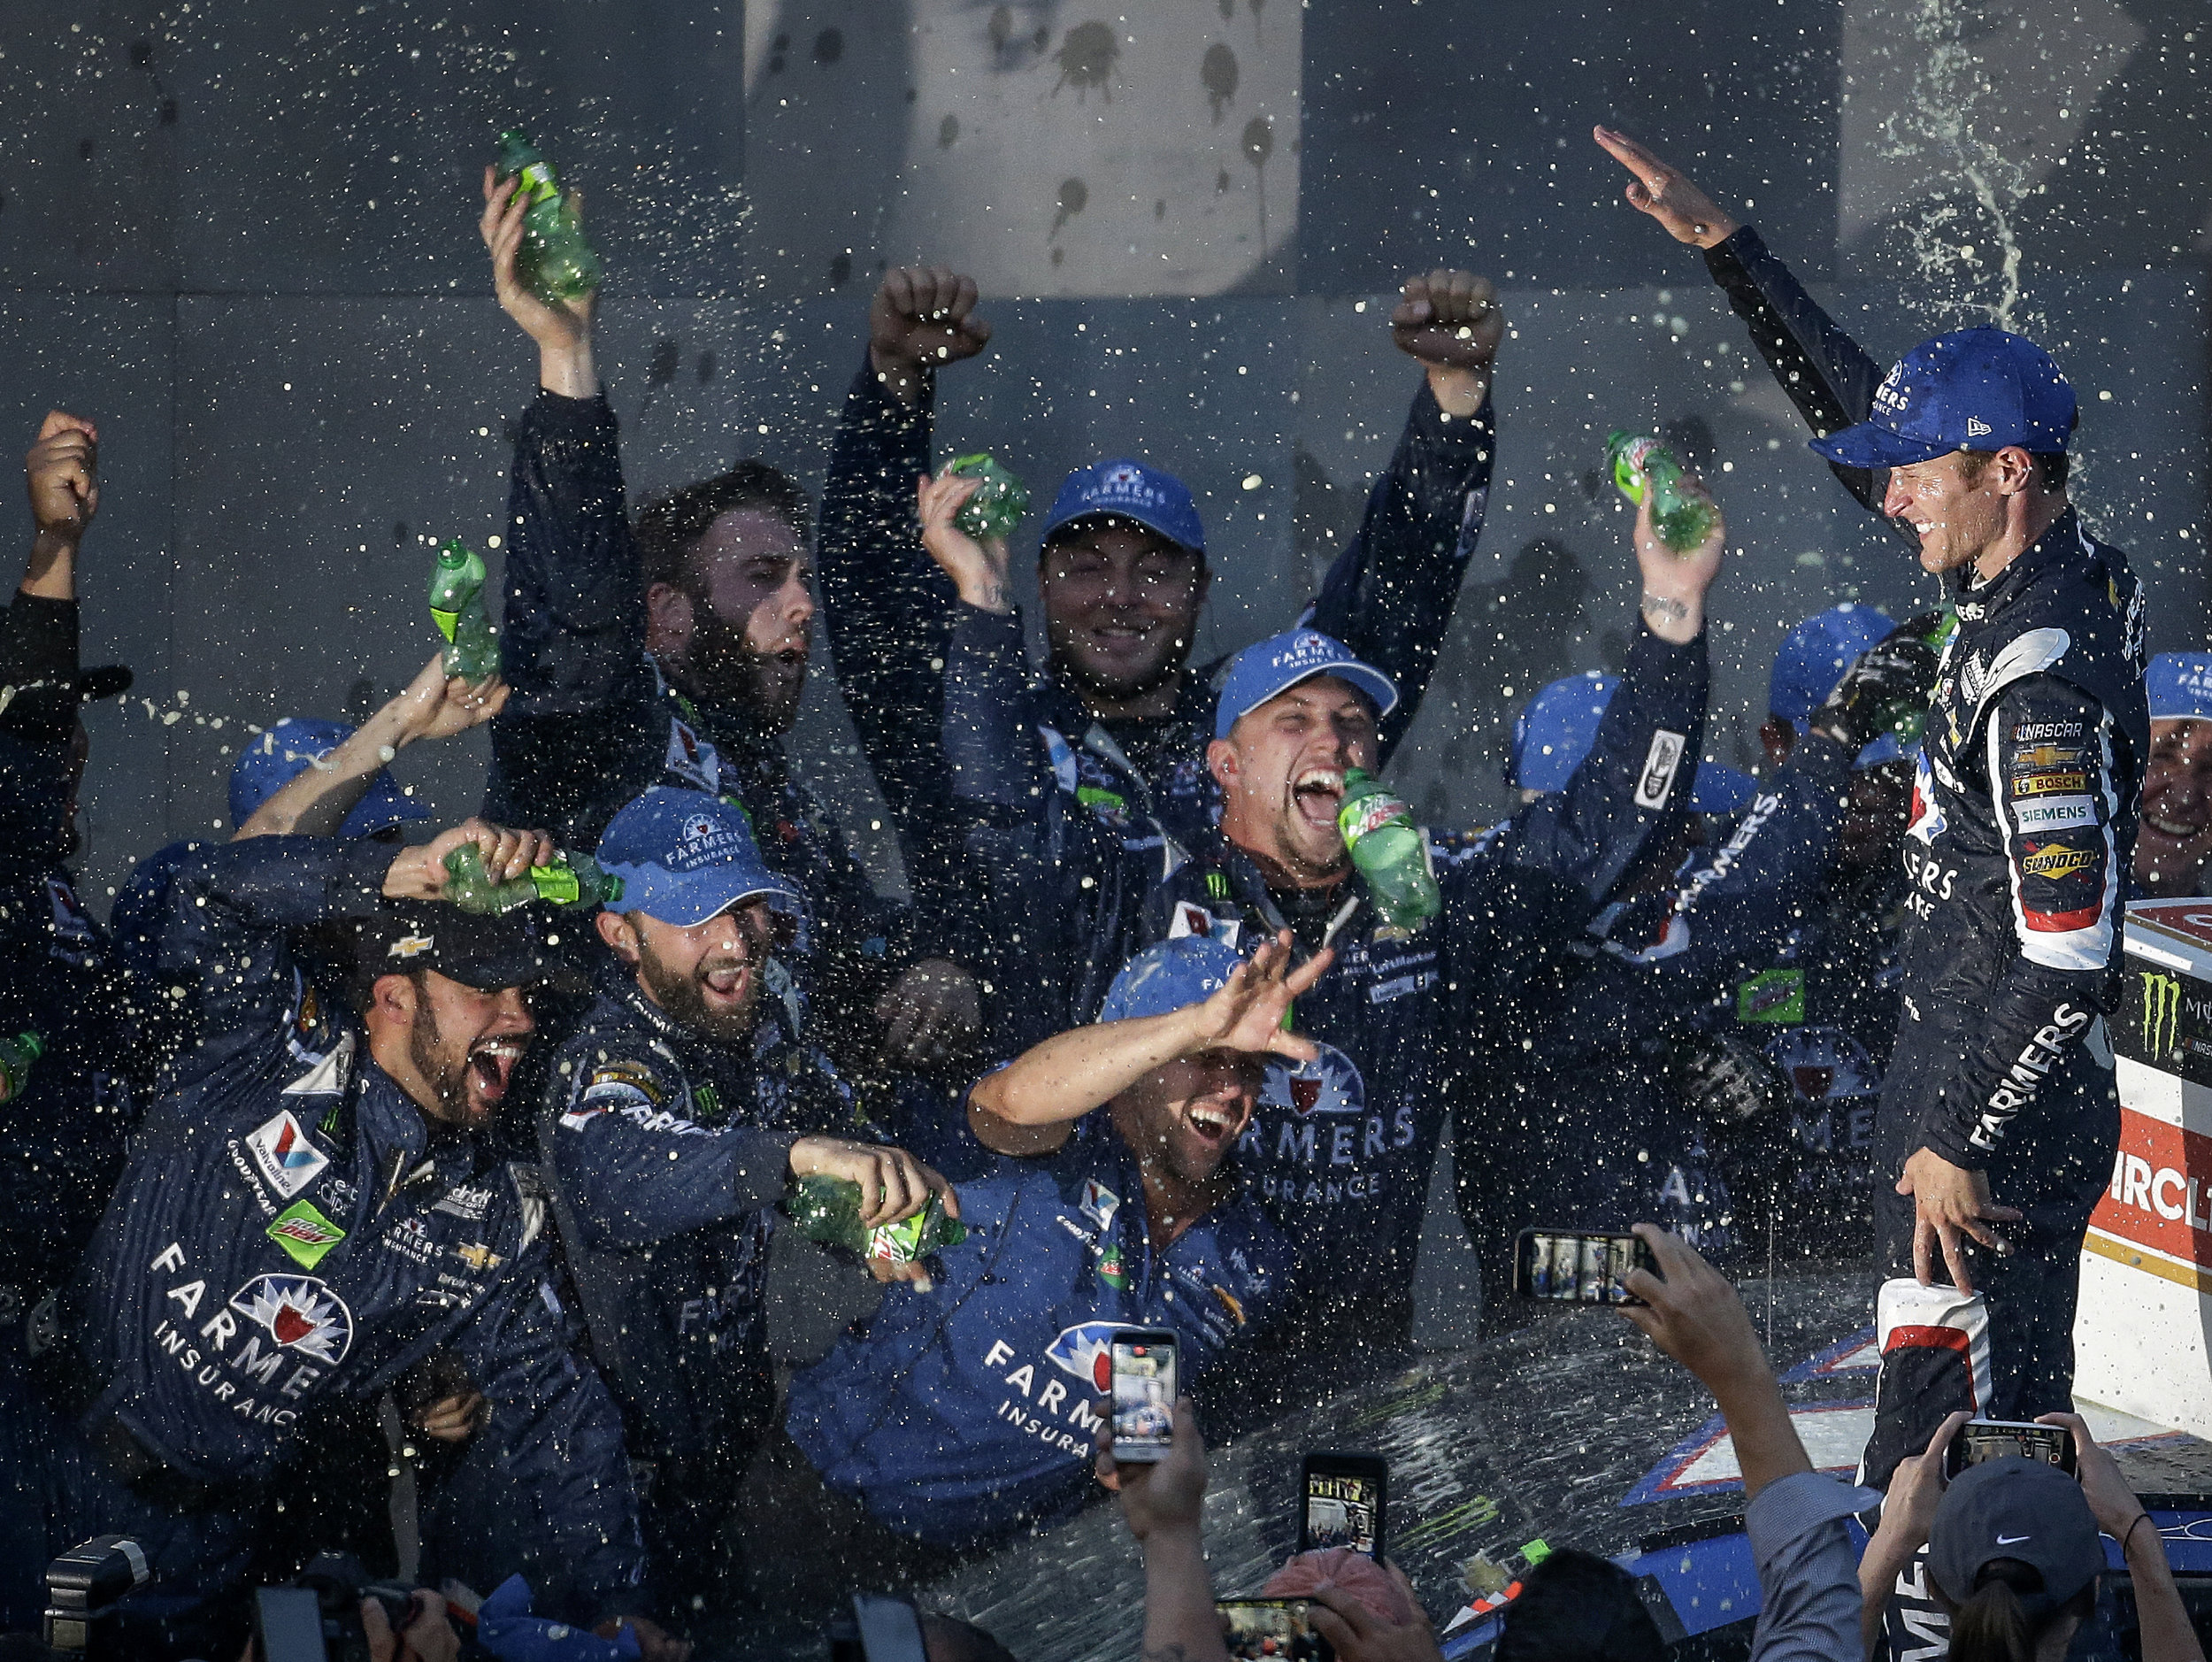 NASCAR driver Kasey Kahne and his crew celebrate their win at the Brickyard 400 at Indianapolis Motor Speedway on Sunday, July 23, 2017. The win came well-deserved after a race that involved a rain delay, a record-breaking 14 cautions, and 7 lead changes.